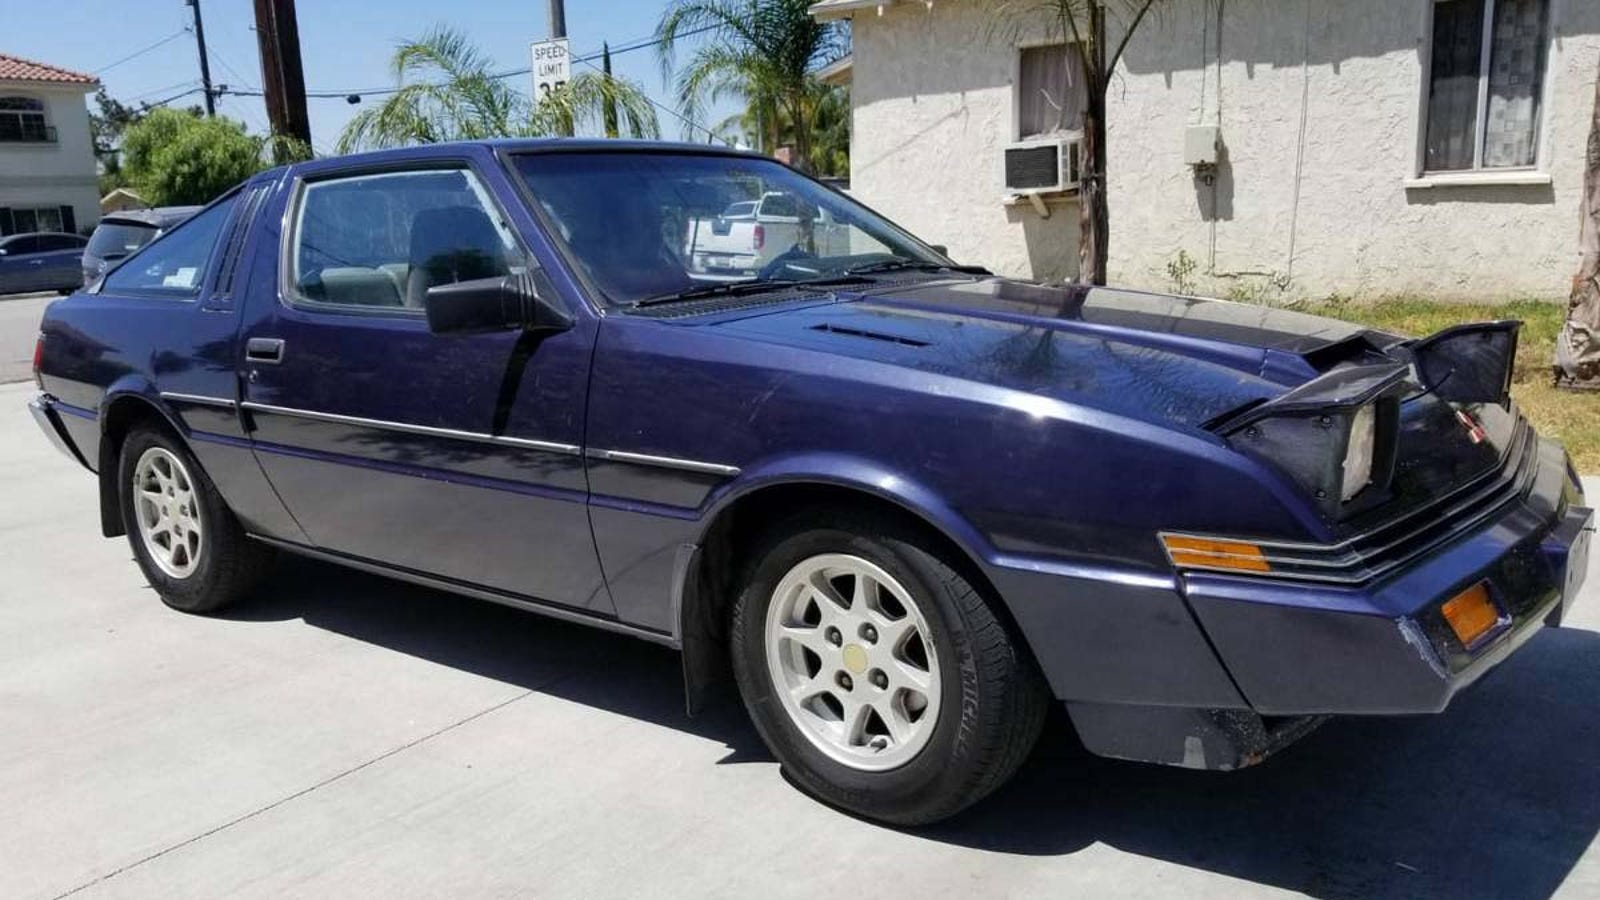 You Are All Fools For Not Buying This Purple Mitsubishi Starion